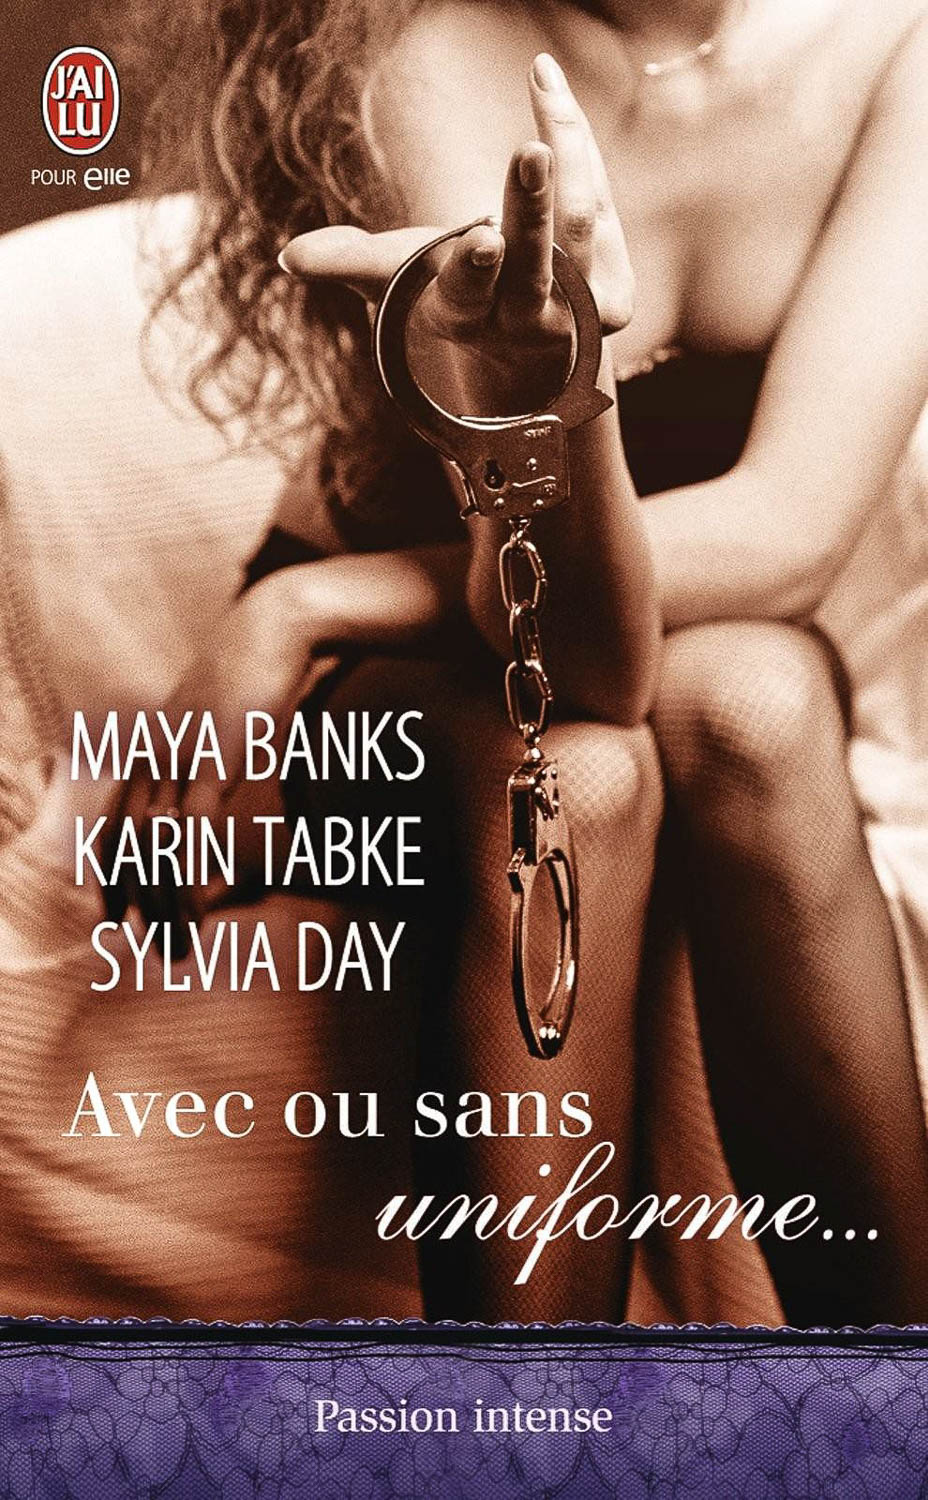 Banks, Tabke, Day, Avec ou sans uniforme Book Cover Photograph by Wolf Kettler